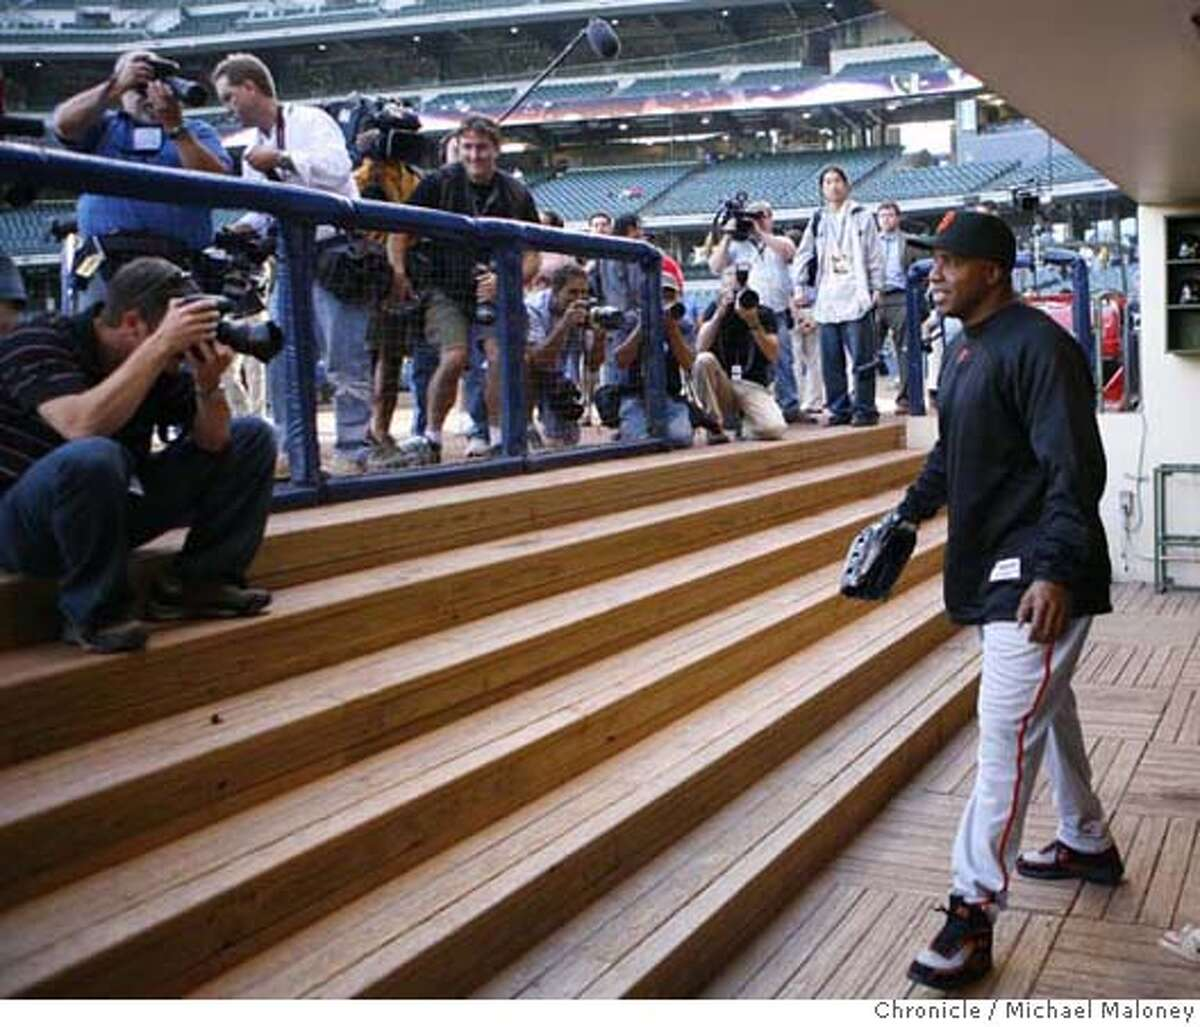 All eyes and lenses are focused on Barry Bonds as he leaves the dugout to warm up. The Milwaukee Brewers host the San Francisco Giants at Miller Park in Milwaukee, WI. Photo taken on 7/20/07 Photo by Michael Maloney / San Francisco Chronicle ***roster/code replacement